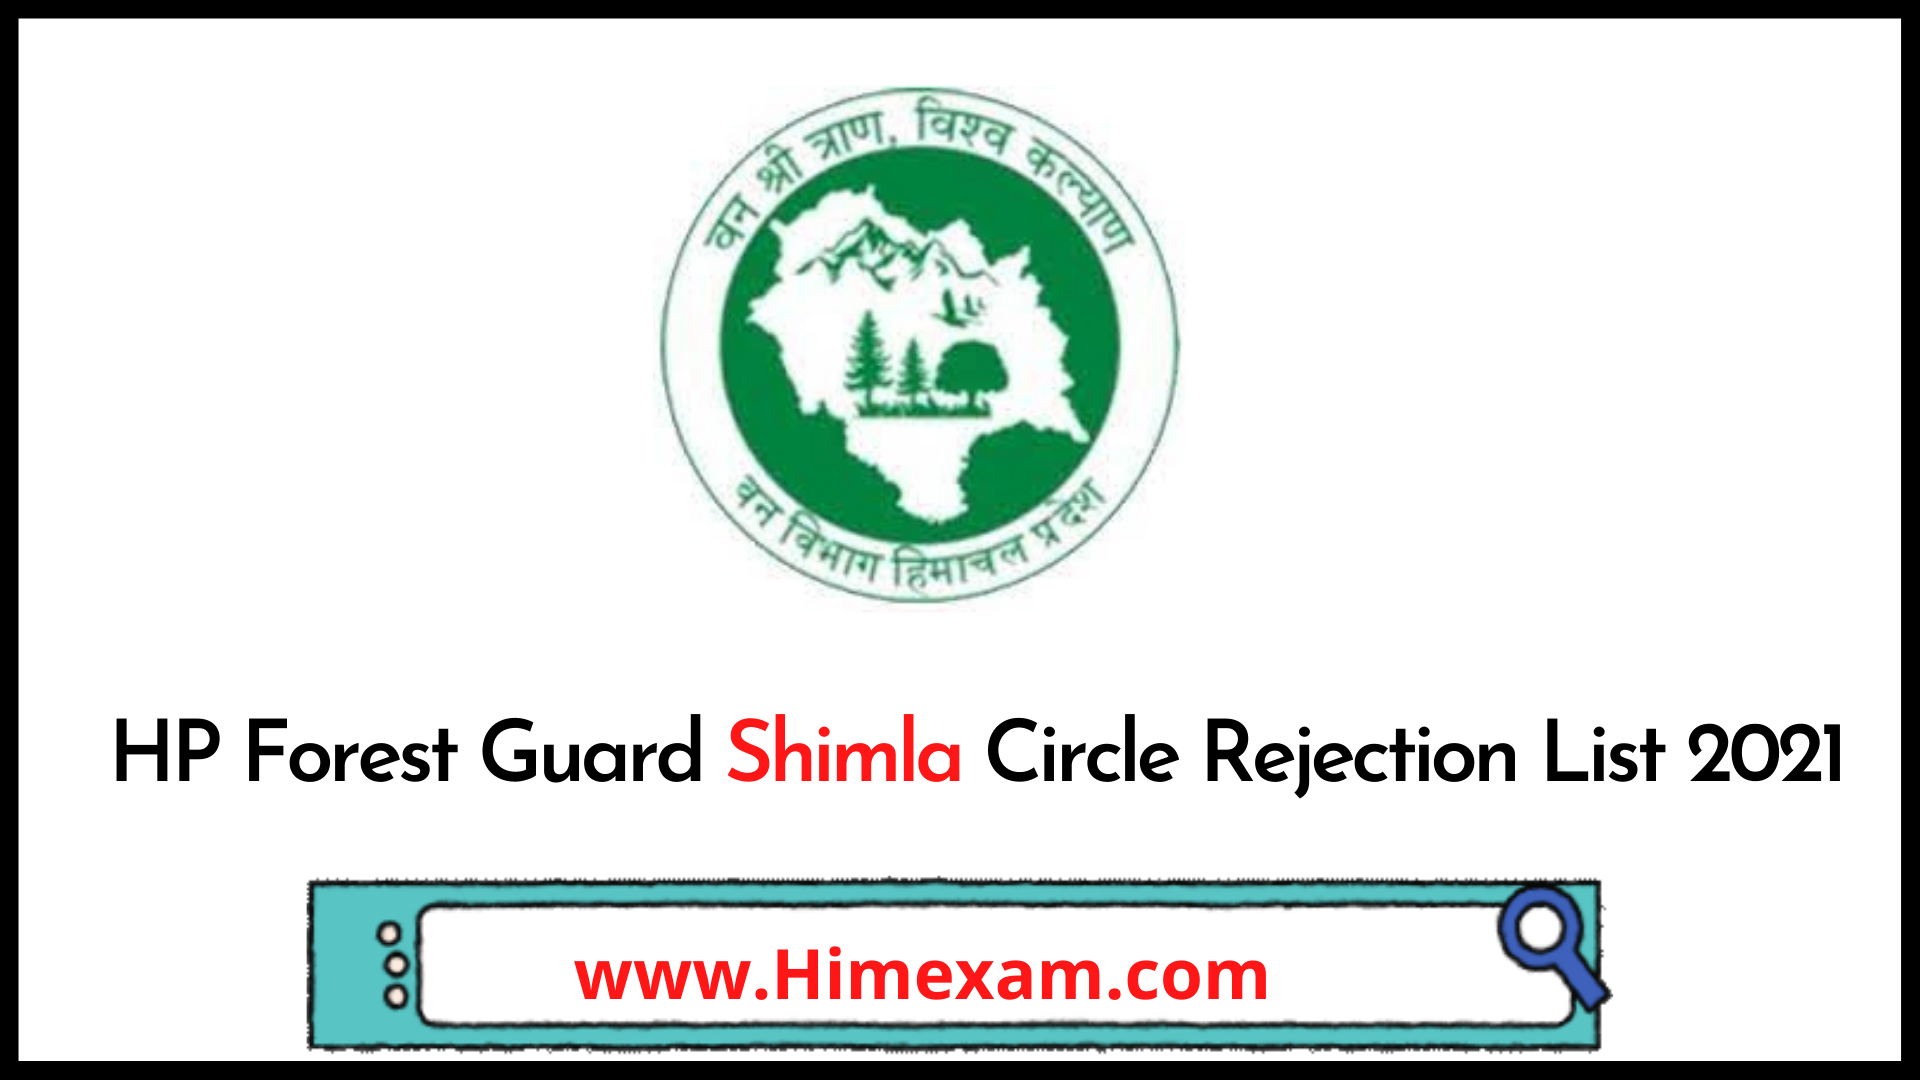 HP Forest Guard Shimla Circle Rejection List 2021